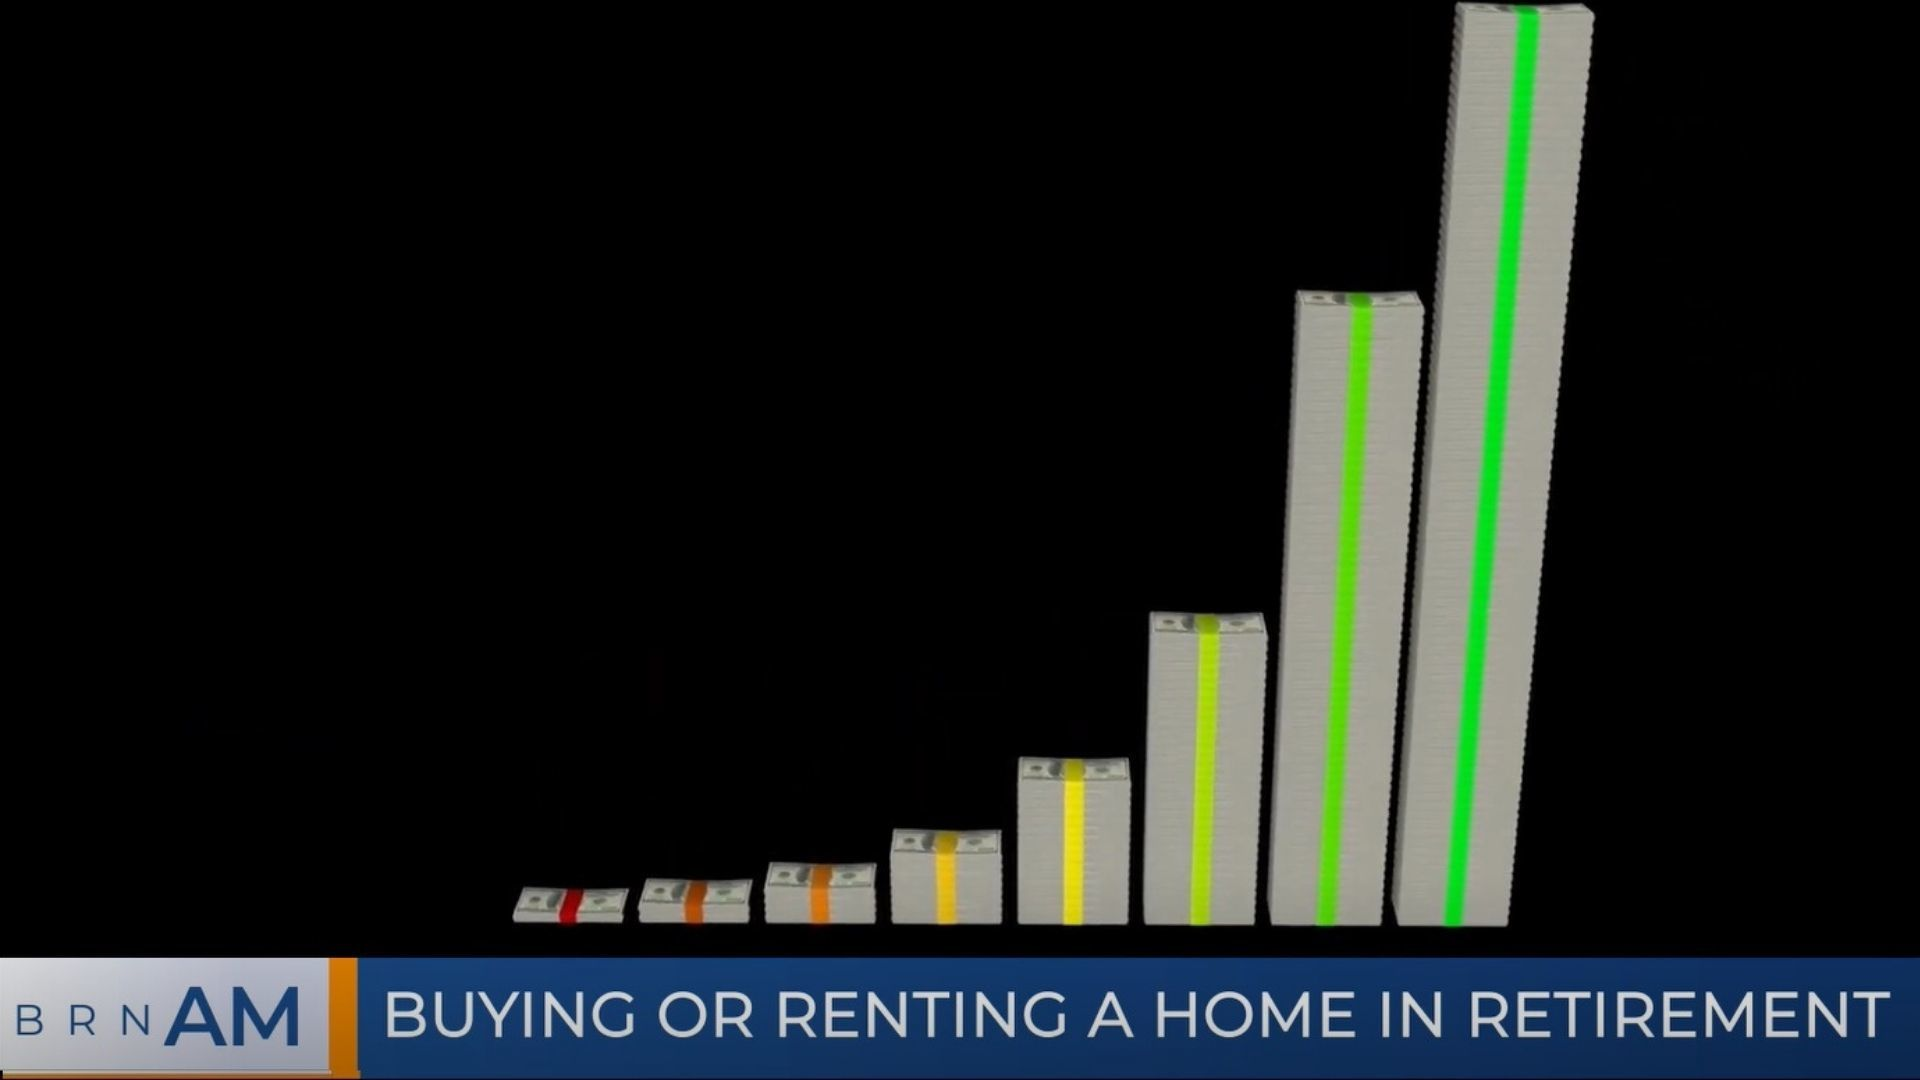 BRN AM   Buying or renting a home in retirement